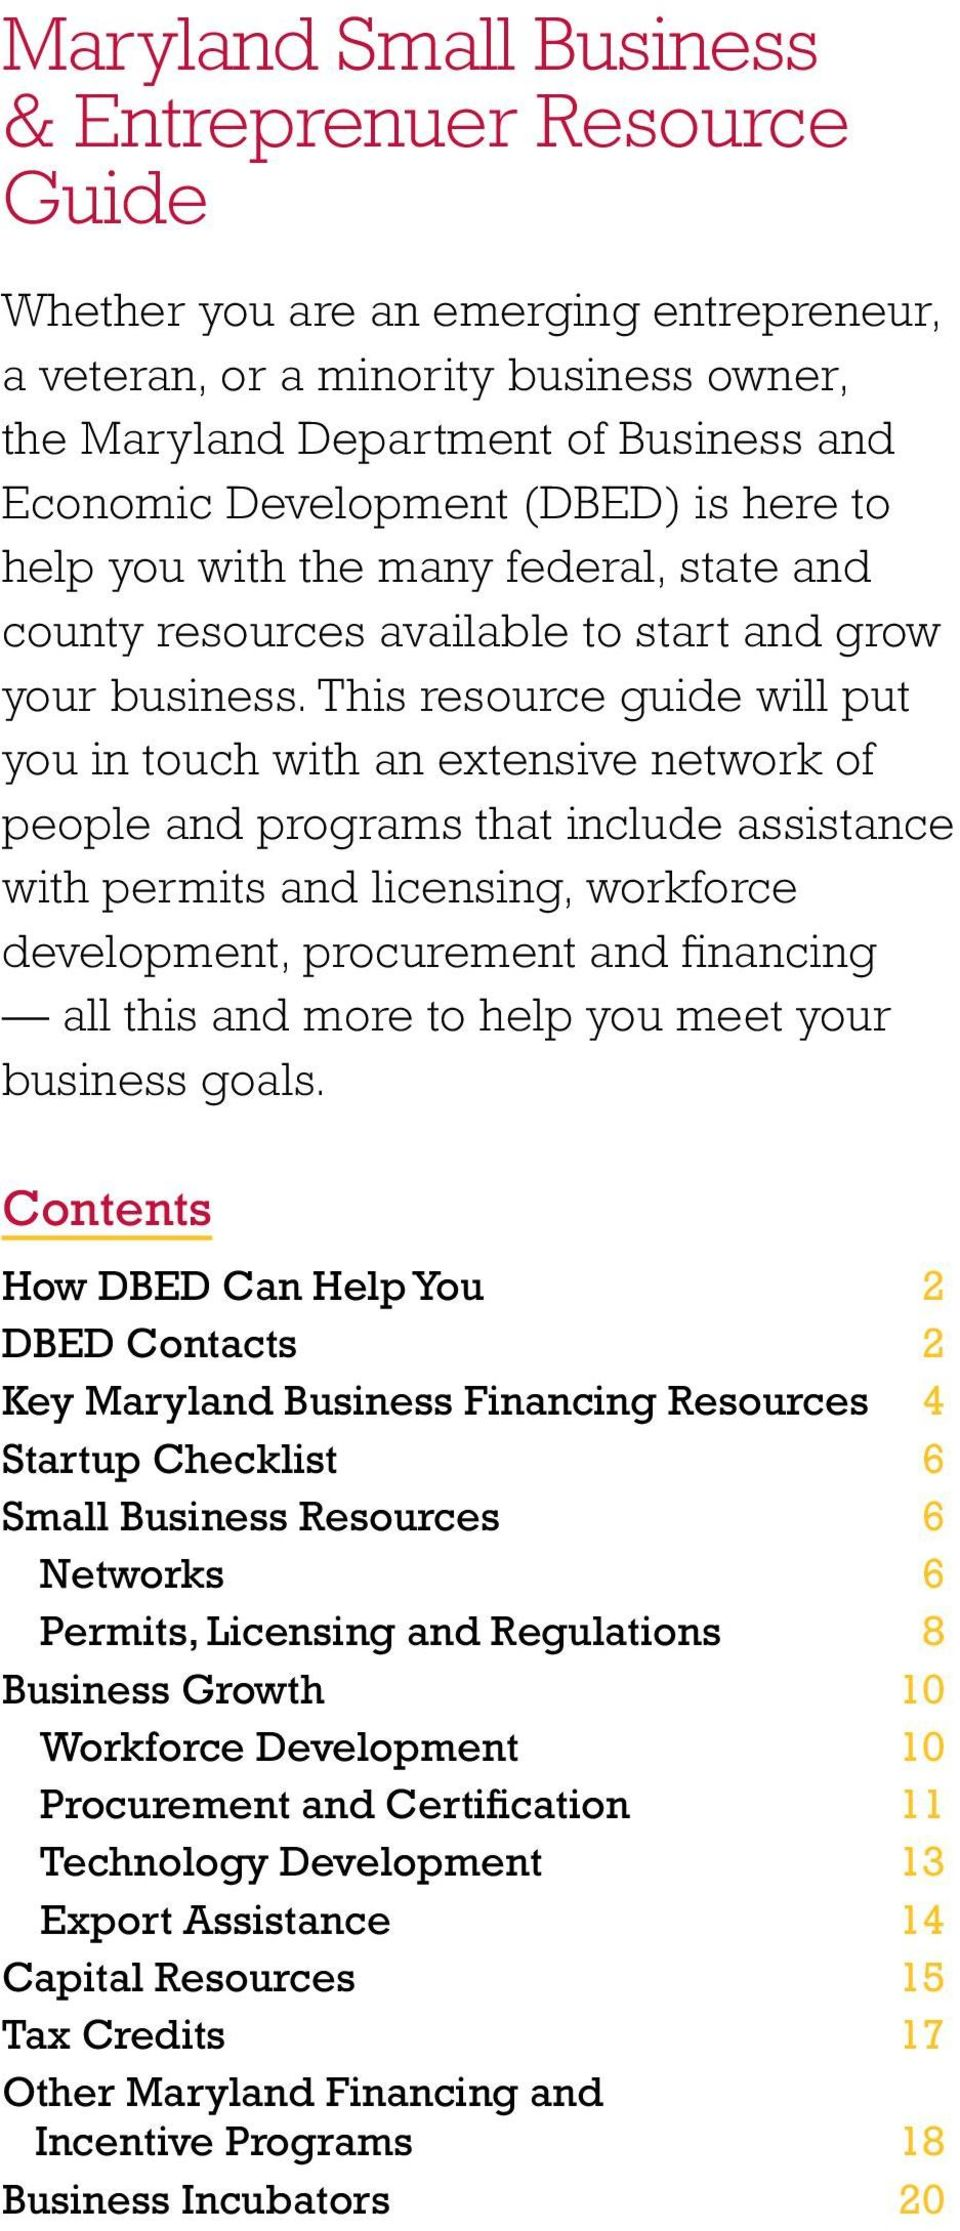 This resource guide will put you in touch with an extensive network of people and programs that include assistance with permits and licensing, workforce development, procurement and financing all